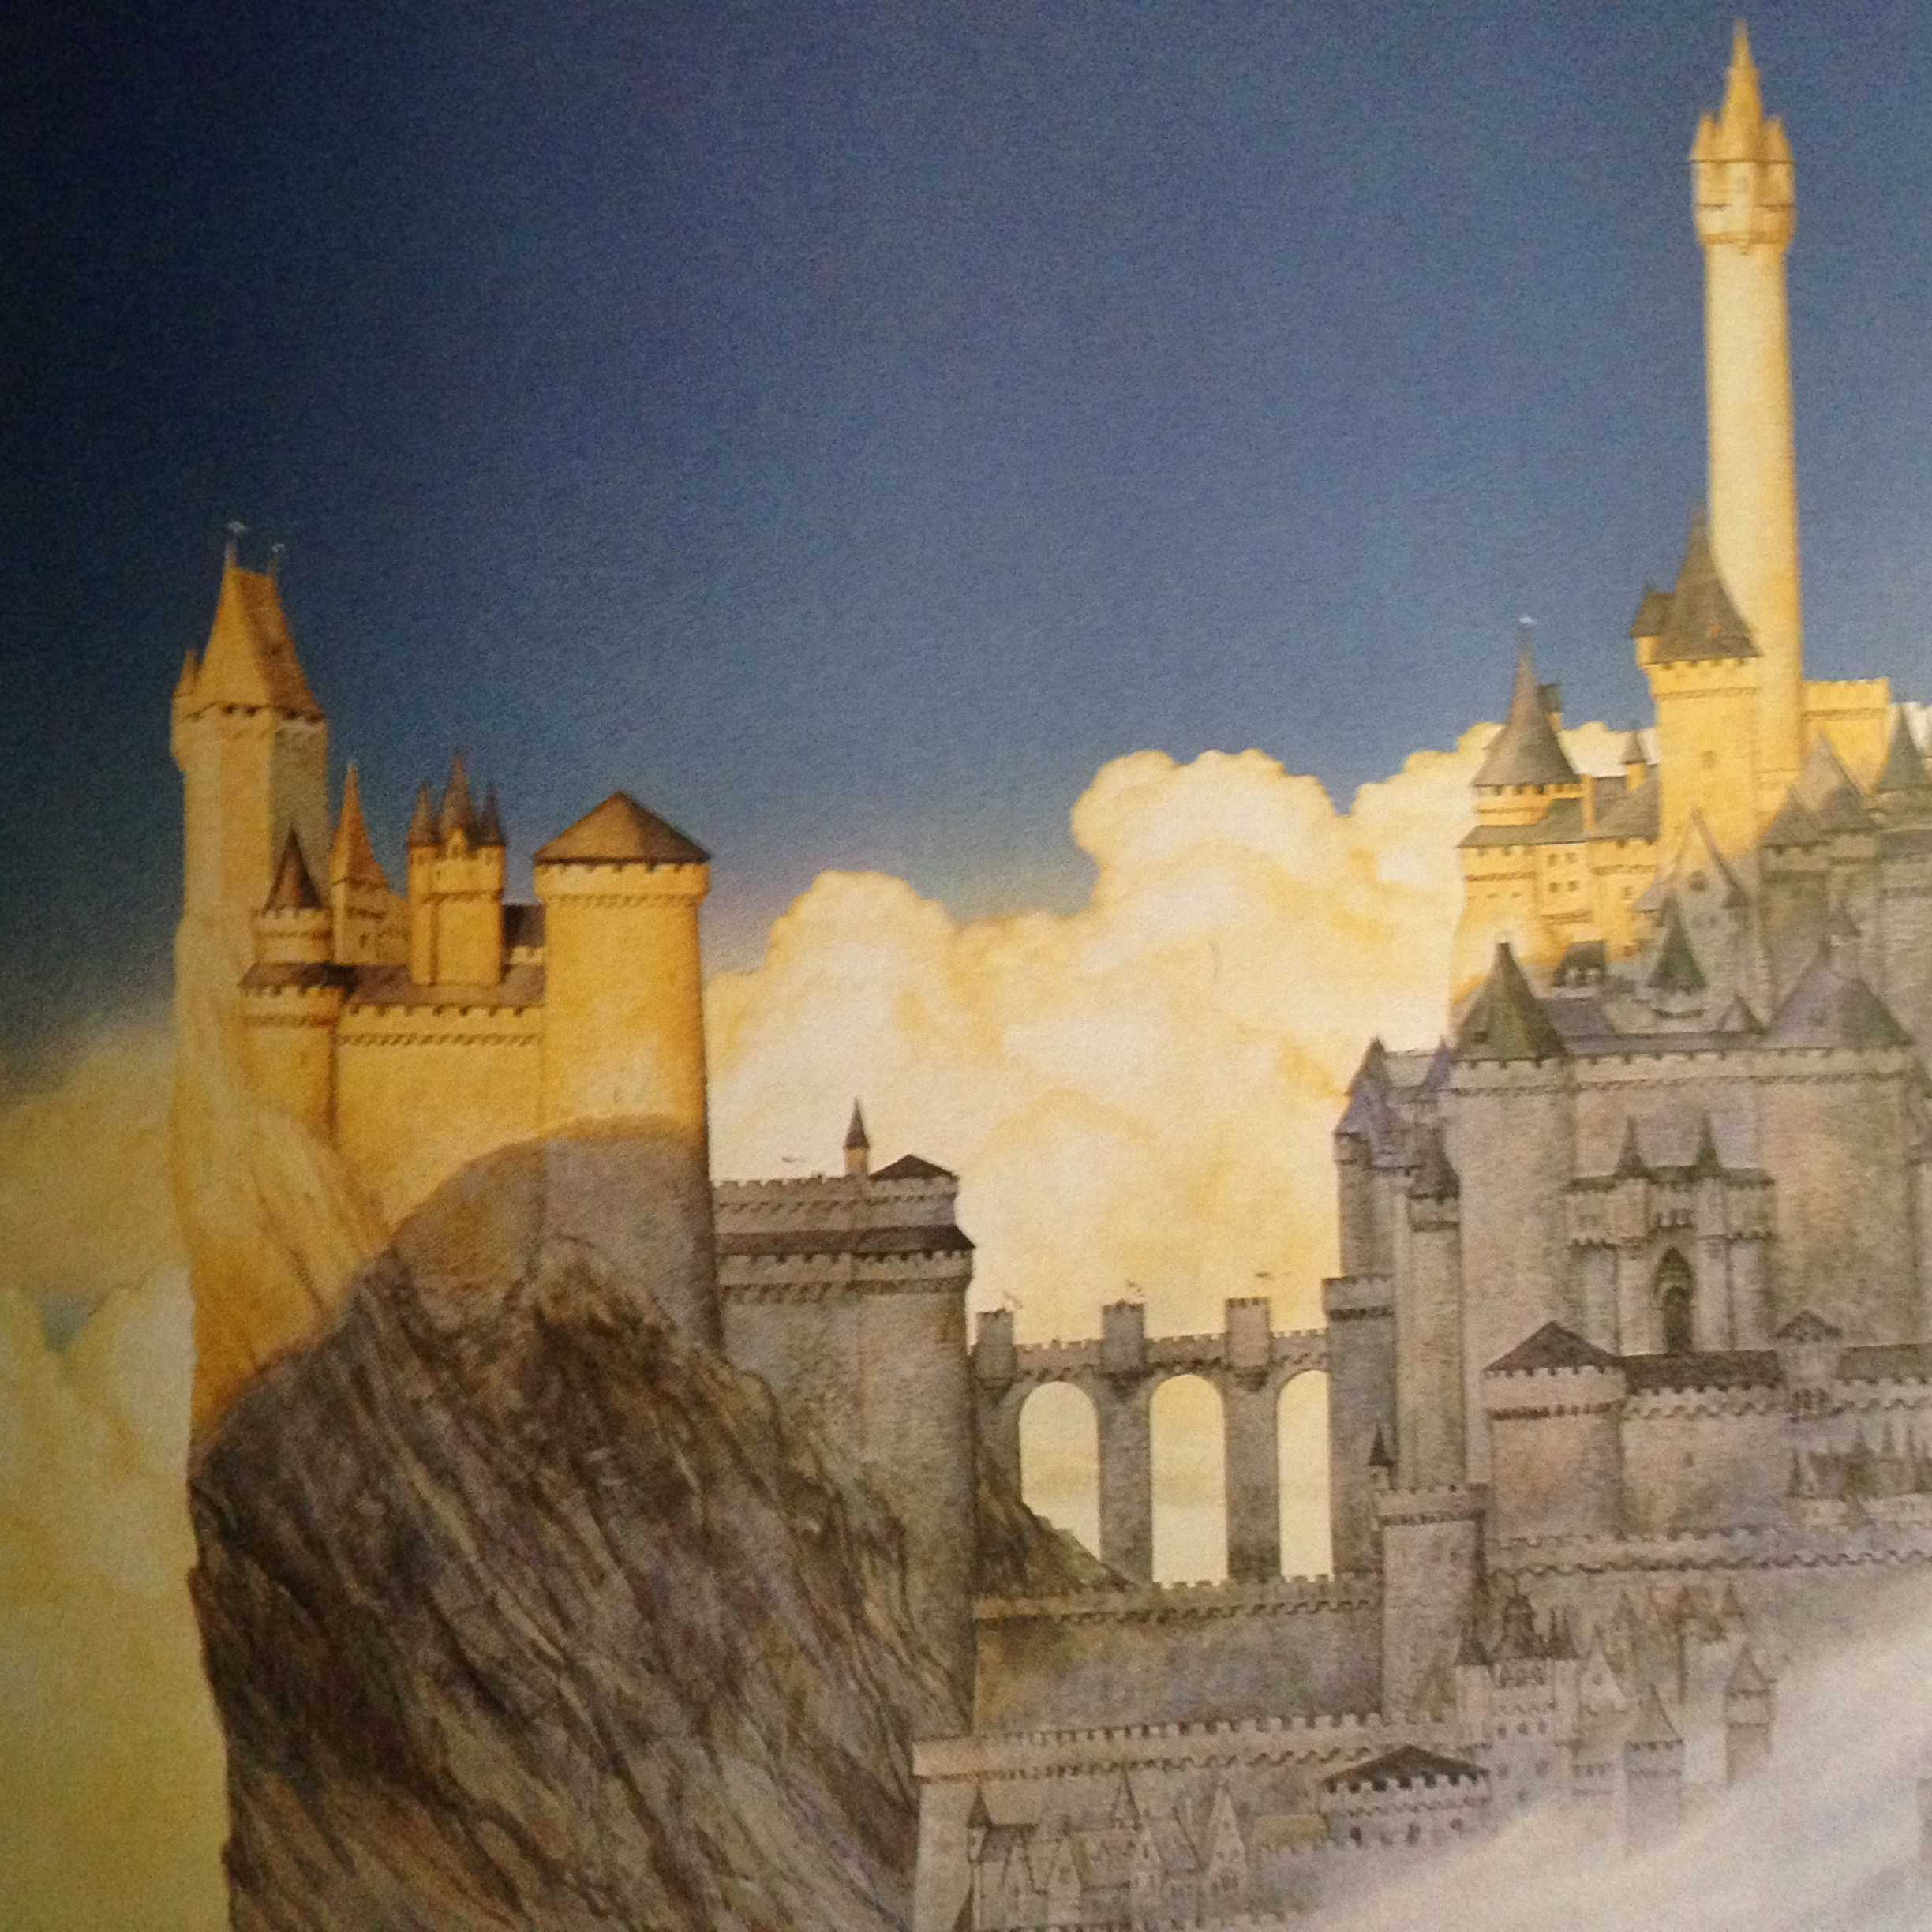 Minas Tirith, Tower of The Morning by John Howe. The Lord of the Rings. Tolkien's World (MJF Books, 1992)